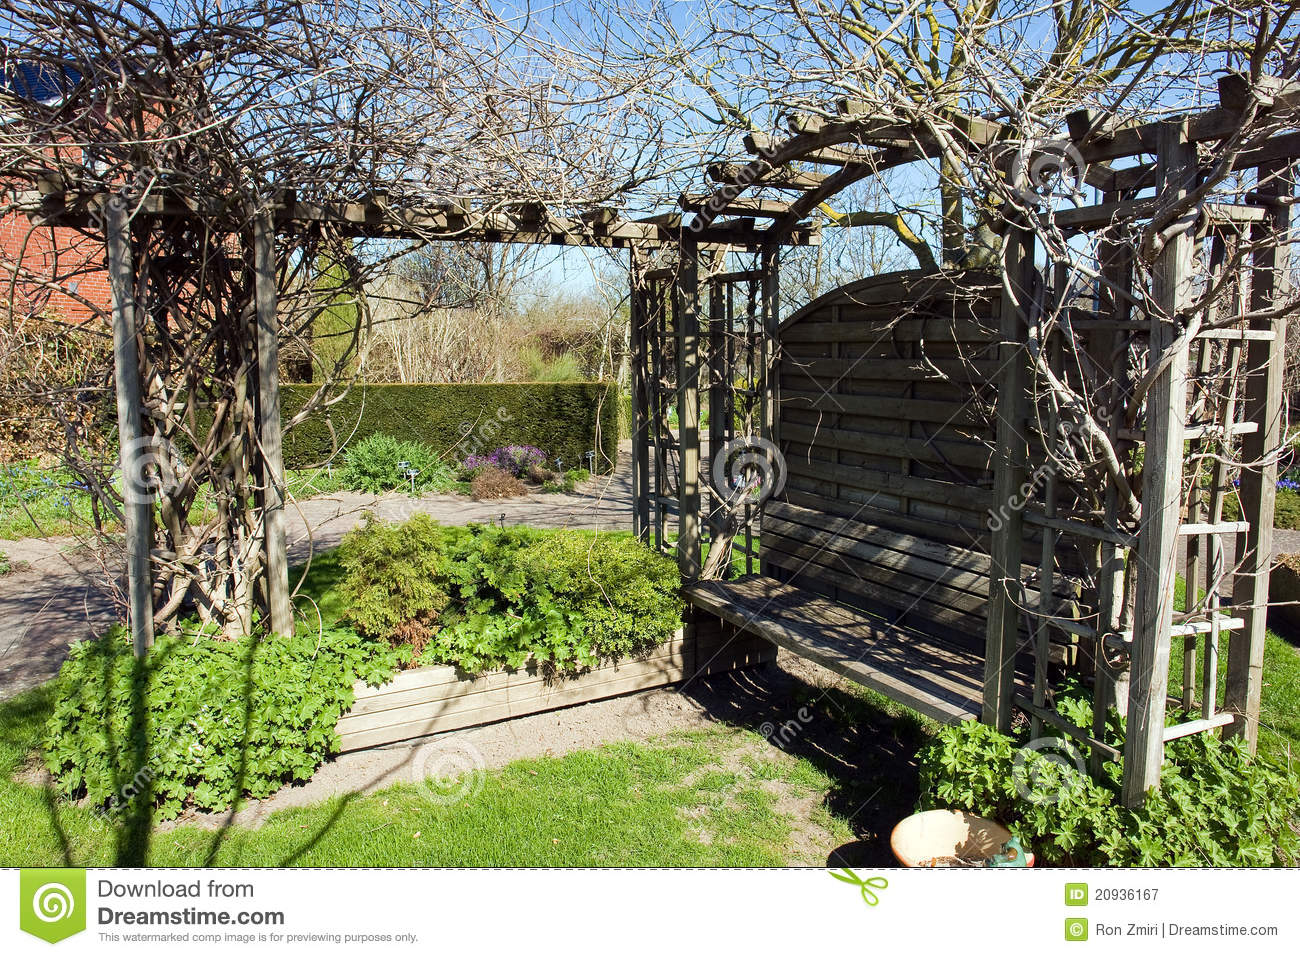 arbre de gazebo de pergola de jardin image stock image du grille beau 20936167. Black Bedroom Furniture Sets. Home Design Ideas